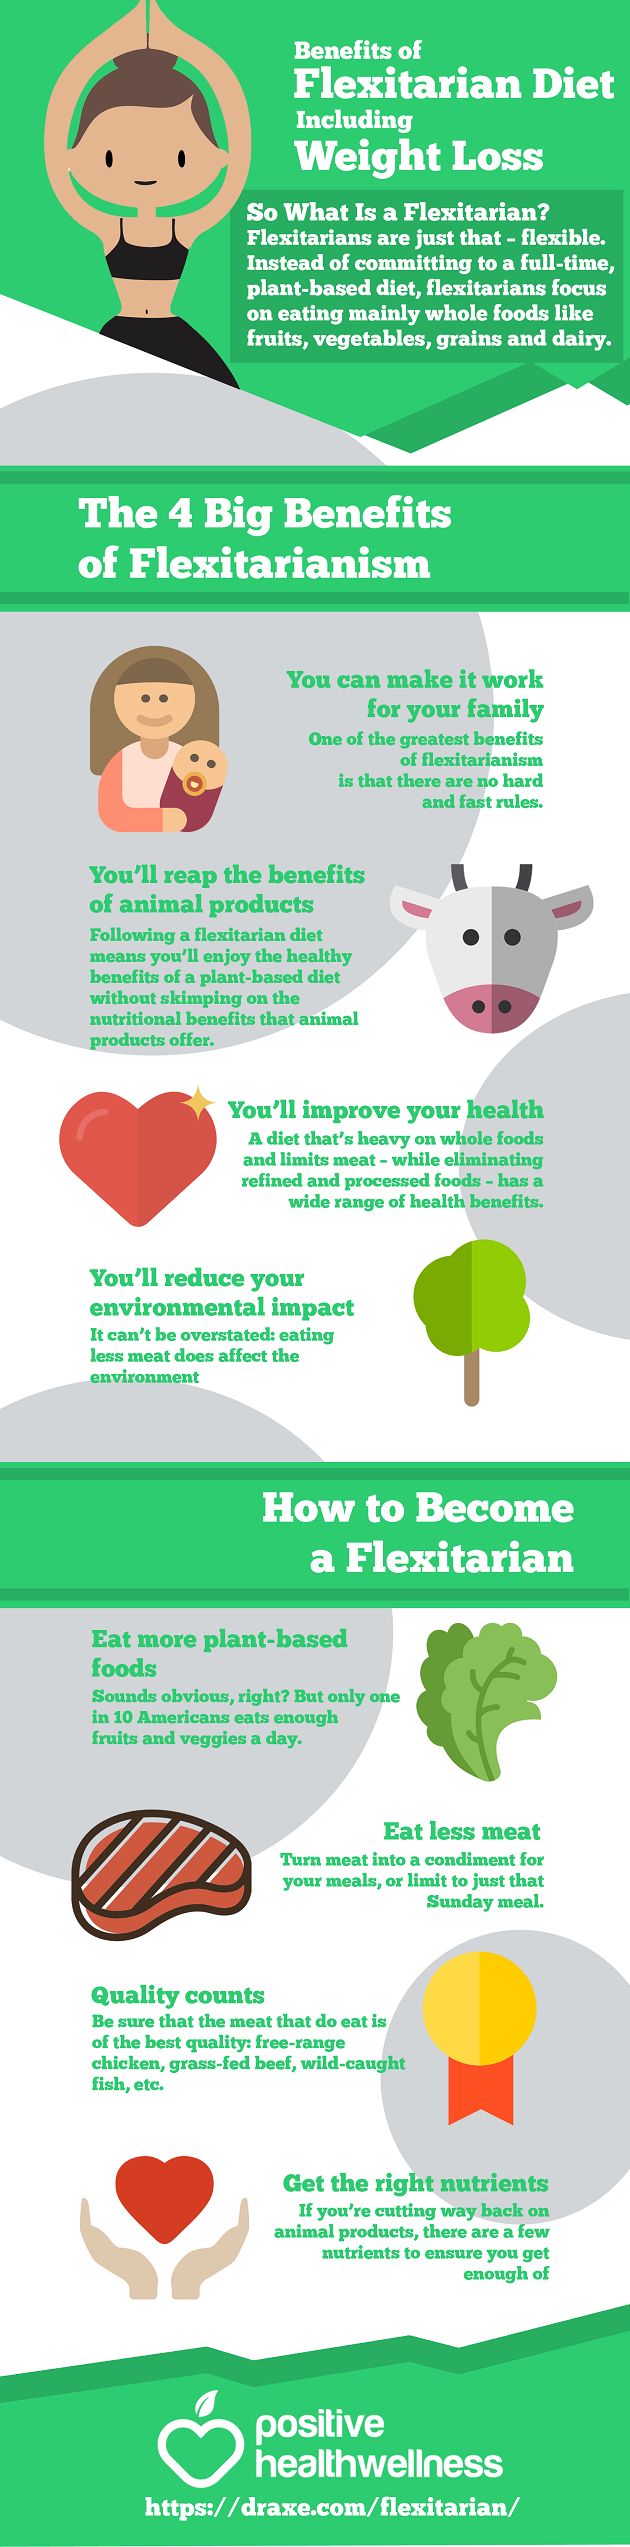 Benefits of the flexitarian diet